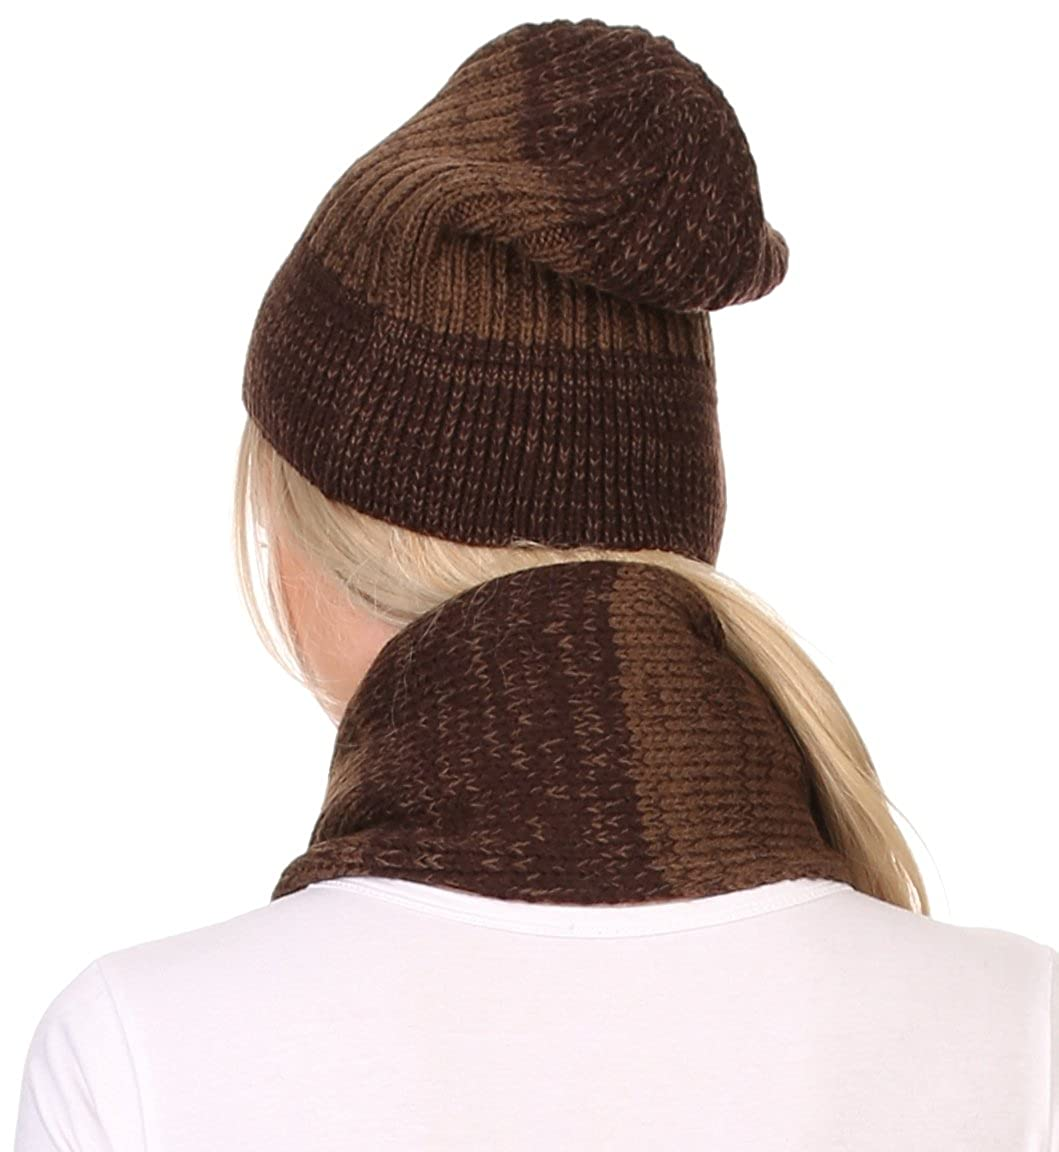 9fdc5ca6178 Sakkas CHSS1541 - Robin Unisex Ribbed Knit Heather Beanie Hat And Scarf Set  - Brown - OS at Amazon Women s Clothing store